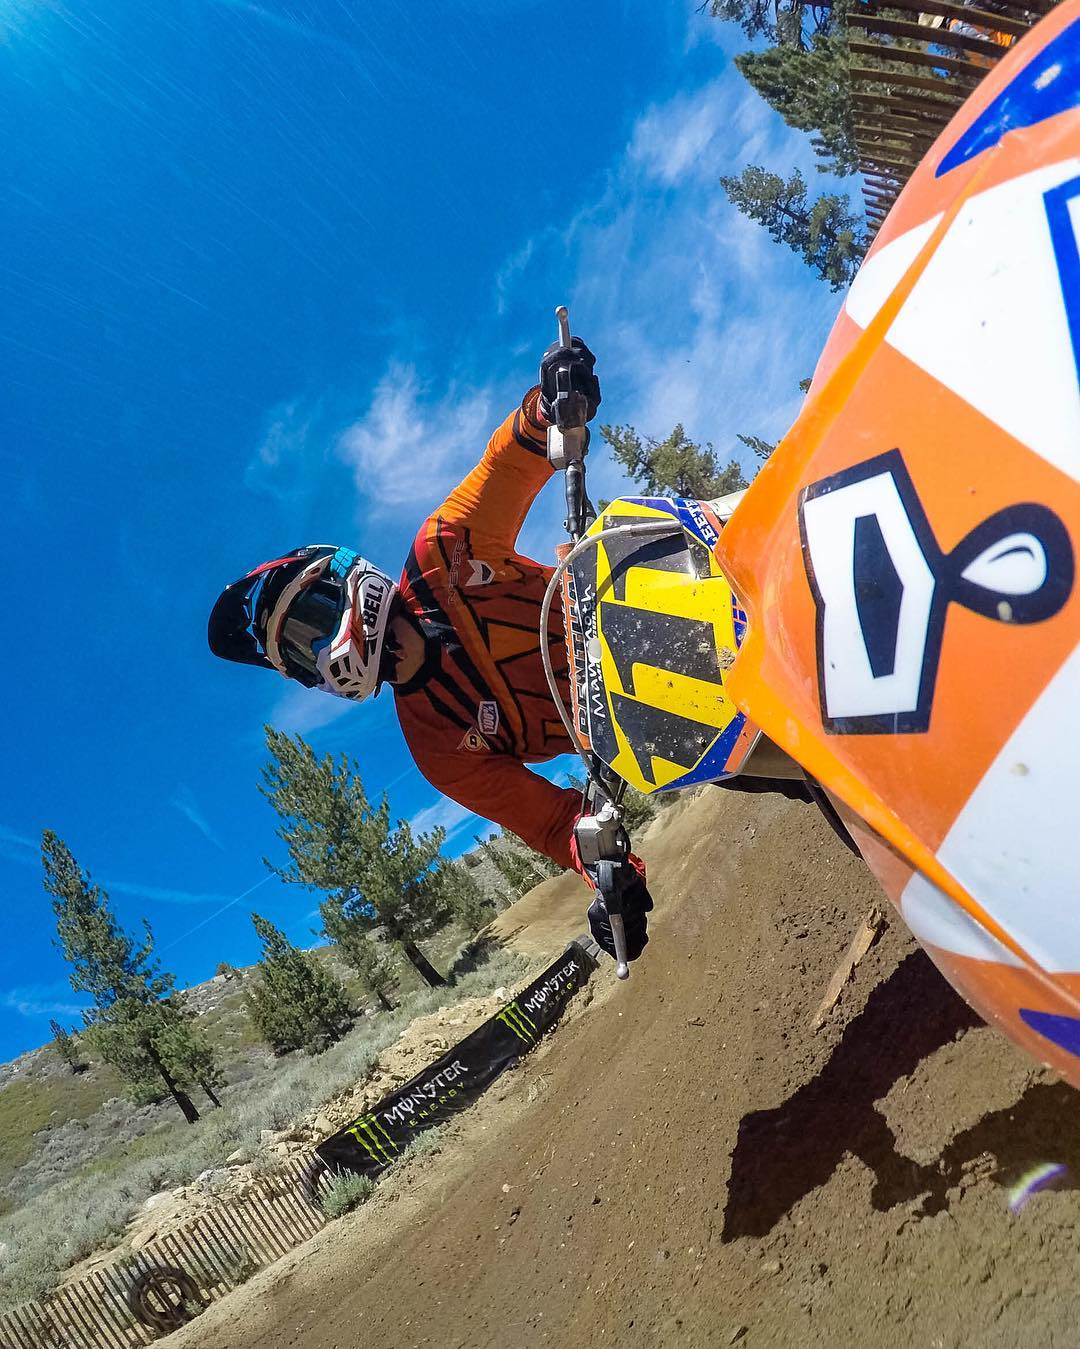 @sleetdawg turning + burning at @monsterenergy #MammothMX #GoPro #GoProMoto @mammothmountain #Motocross  #